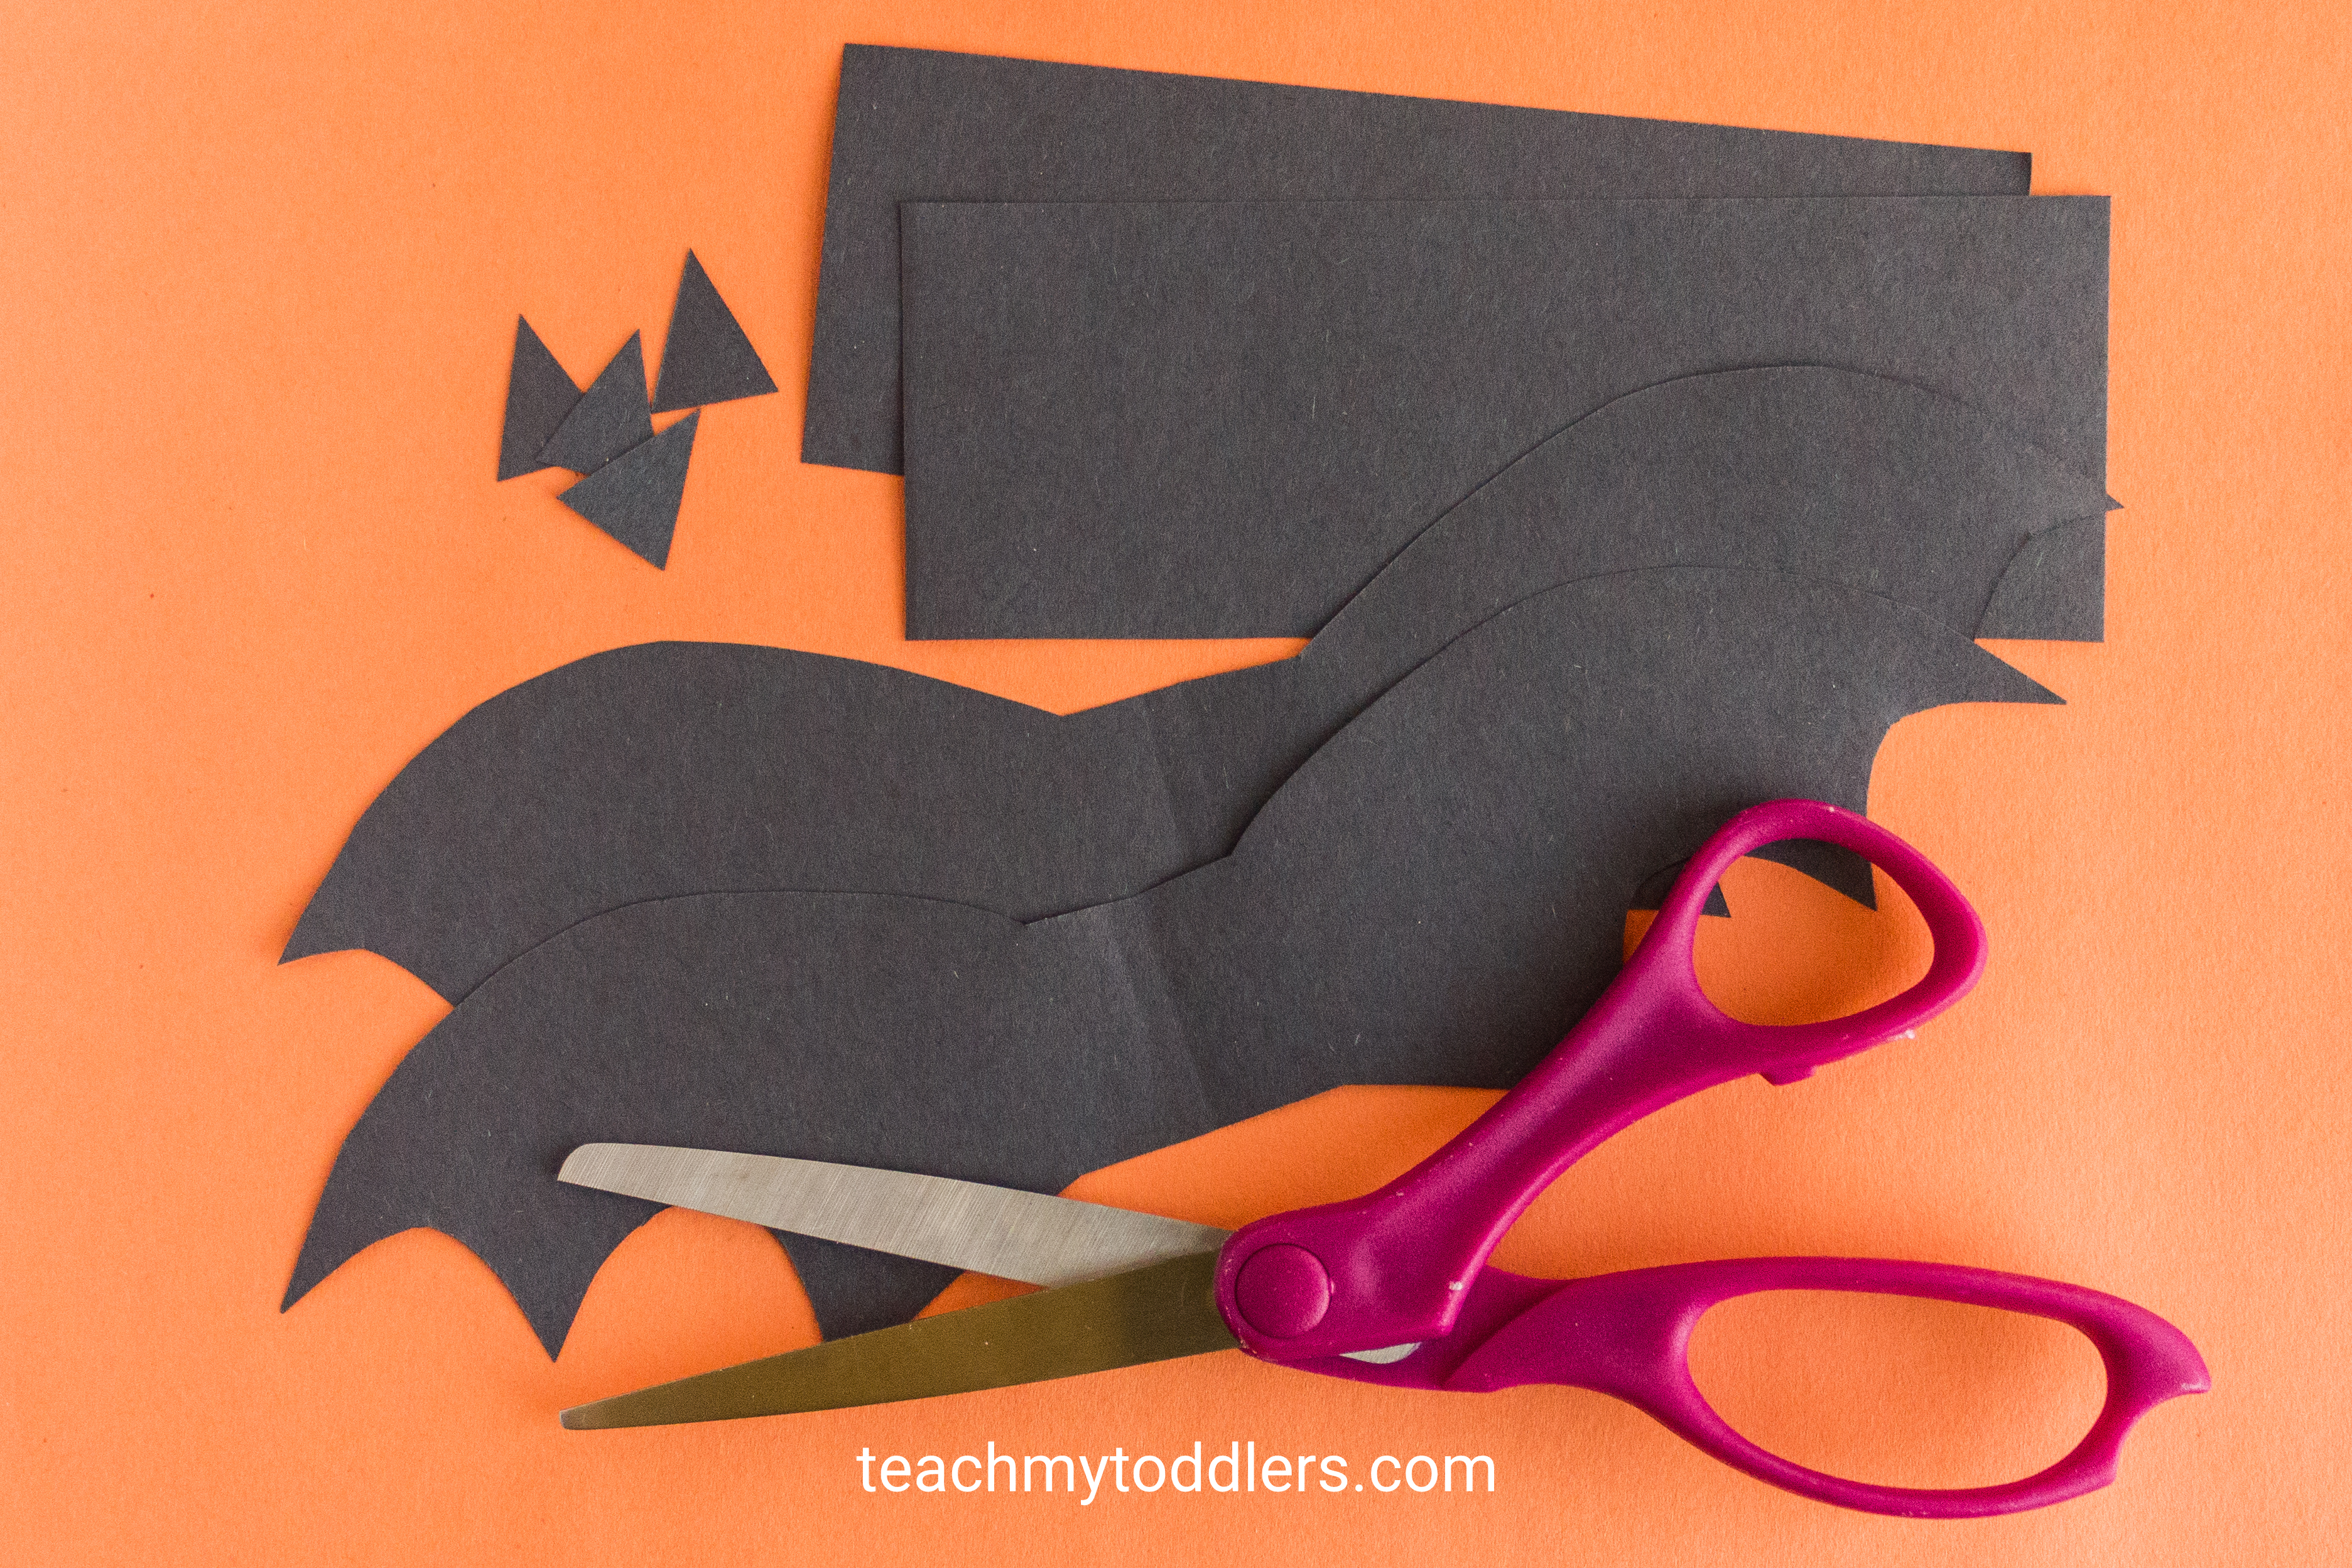 Learn how to make this fun paper bat craft for your toddler's halloween activity